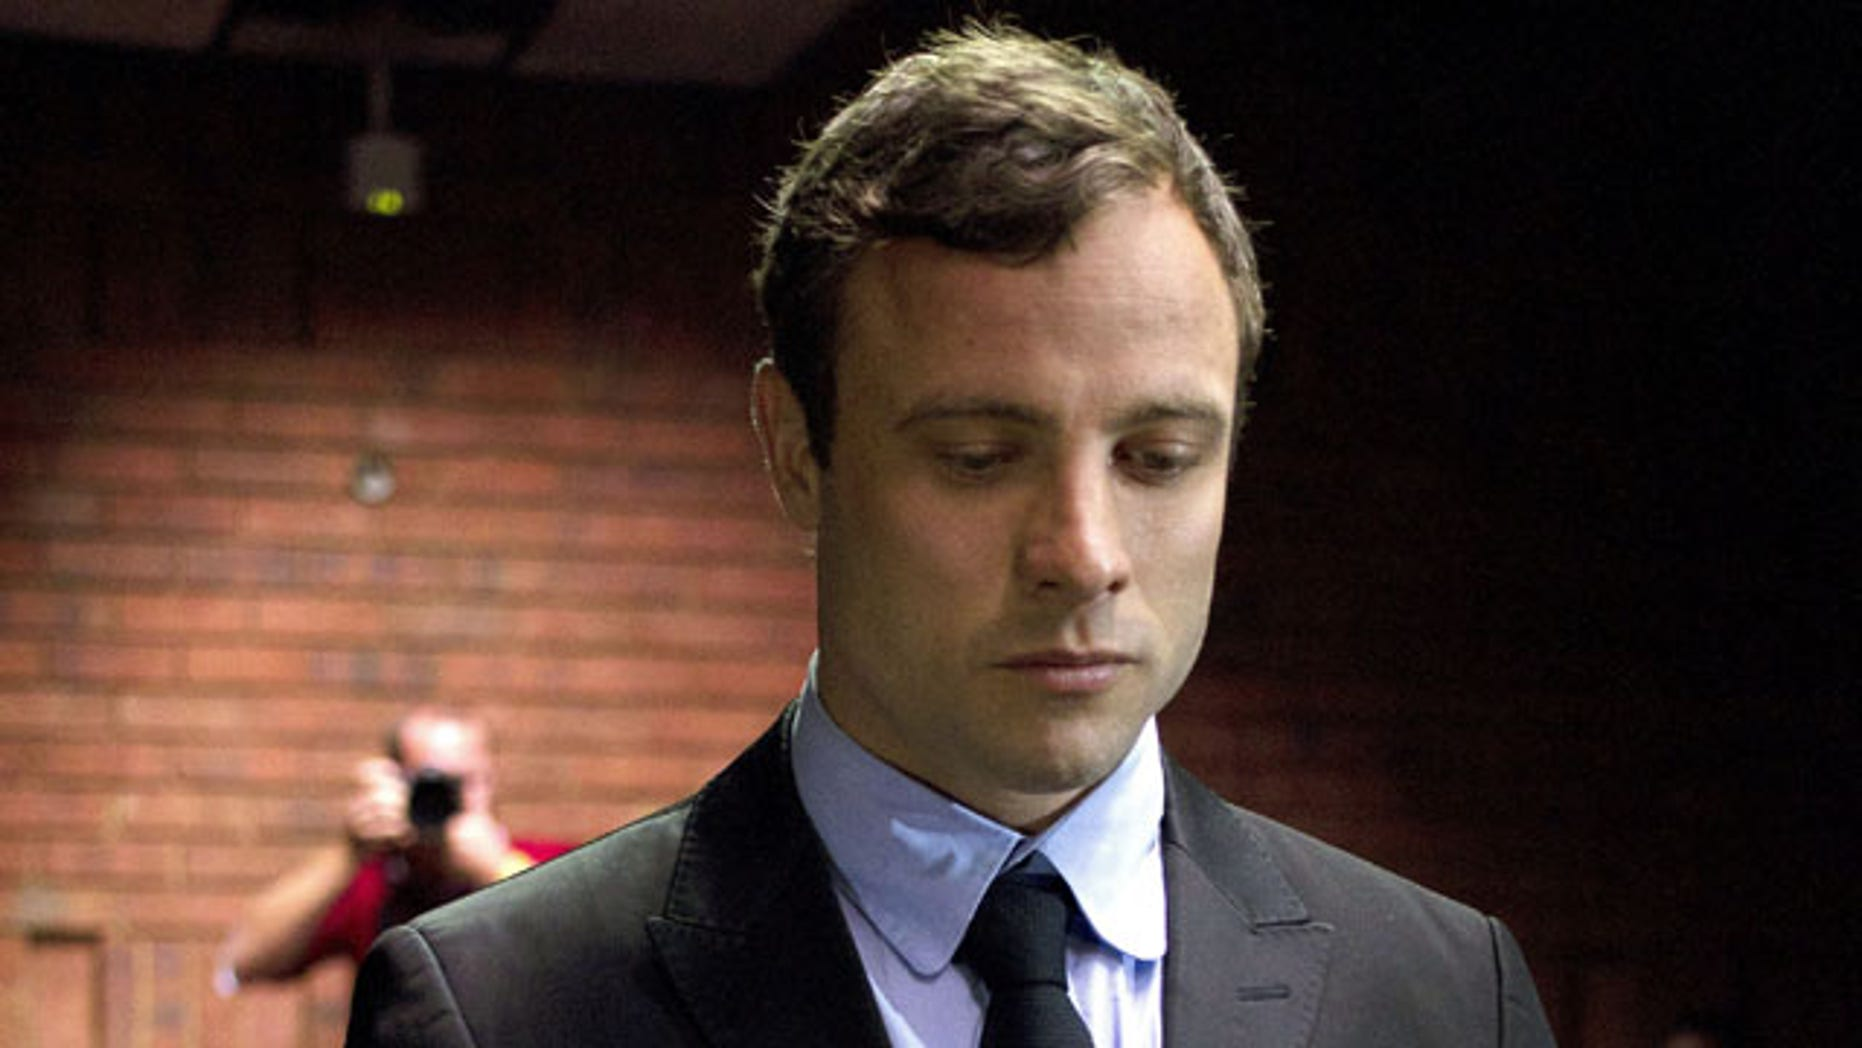 Aug, 19, 2013: Olympic and Paralympic athlete Oscar Pistorius is pictured here during a pre-trial hearing. (AP)